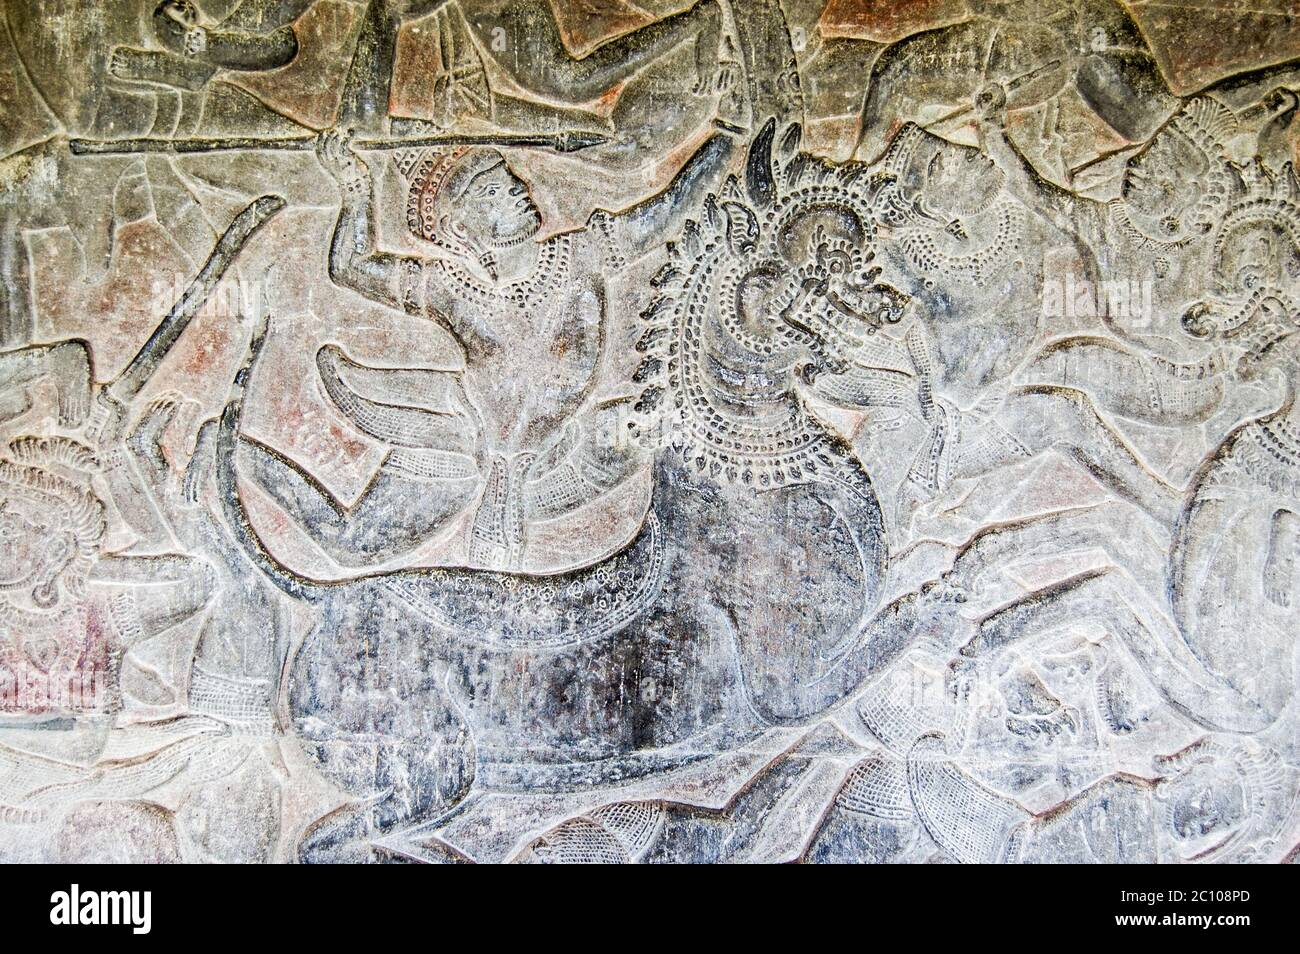 Ancient Khmer carving of a Hindu god riding into battle on the back of an imperial lion. Bas relief frieze on a wall of Angkor Wat Temple, Siem Reap, Stock Photo